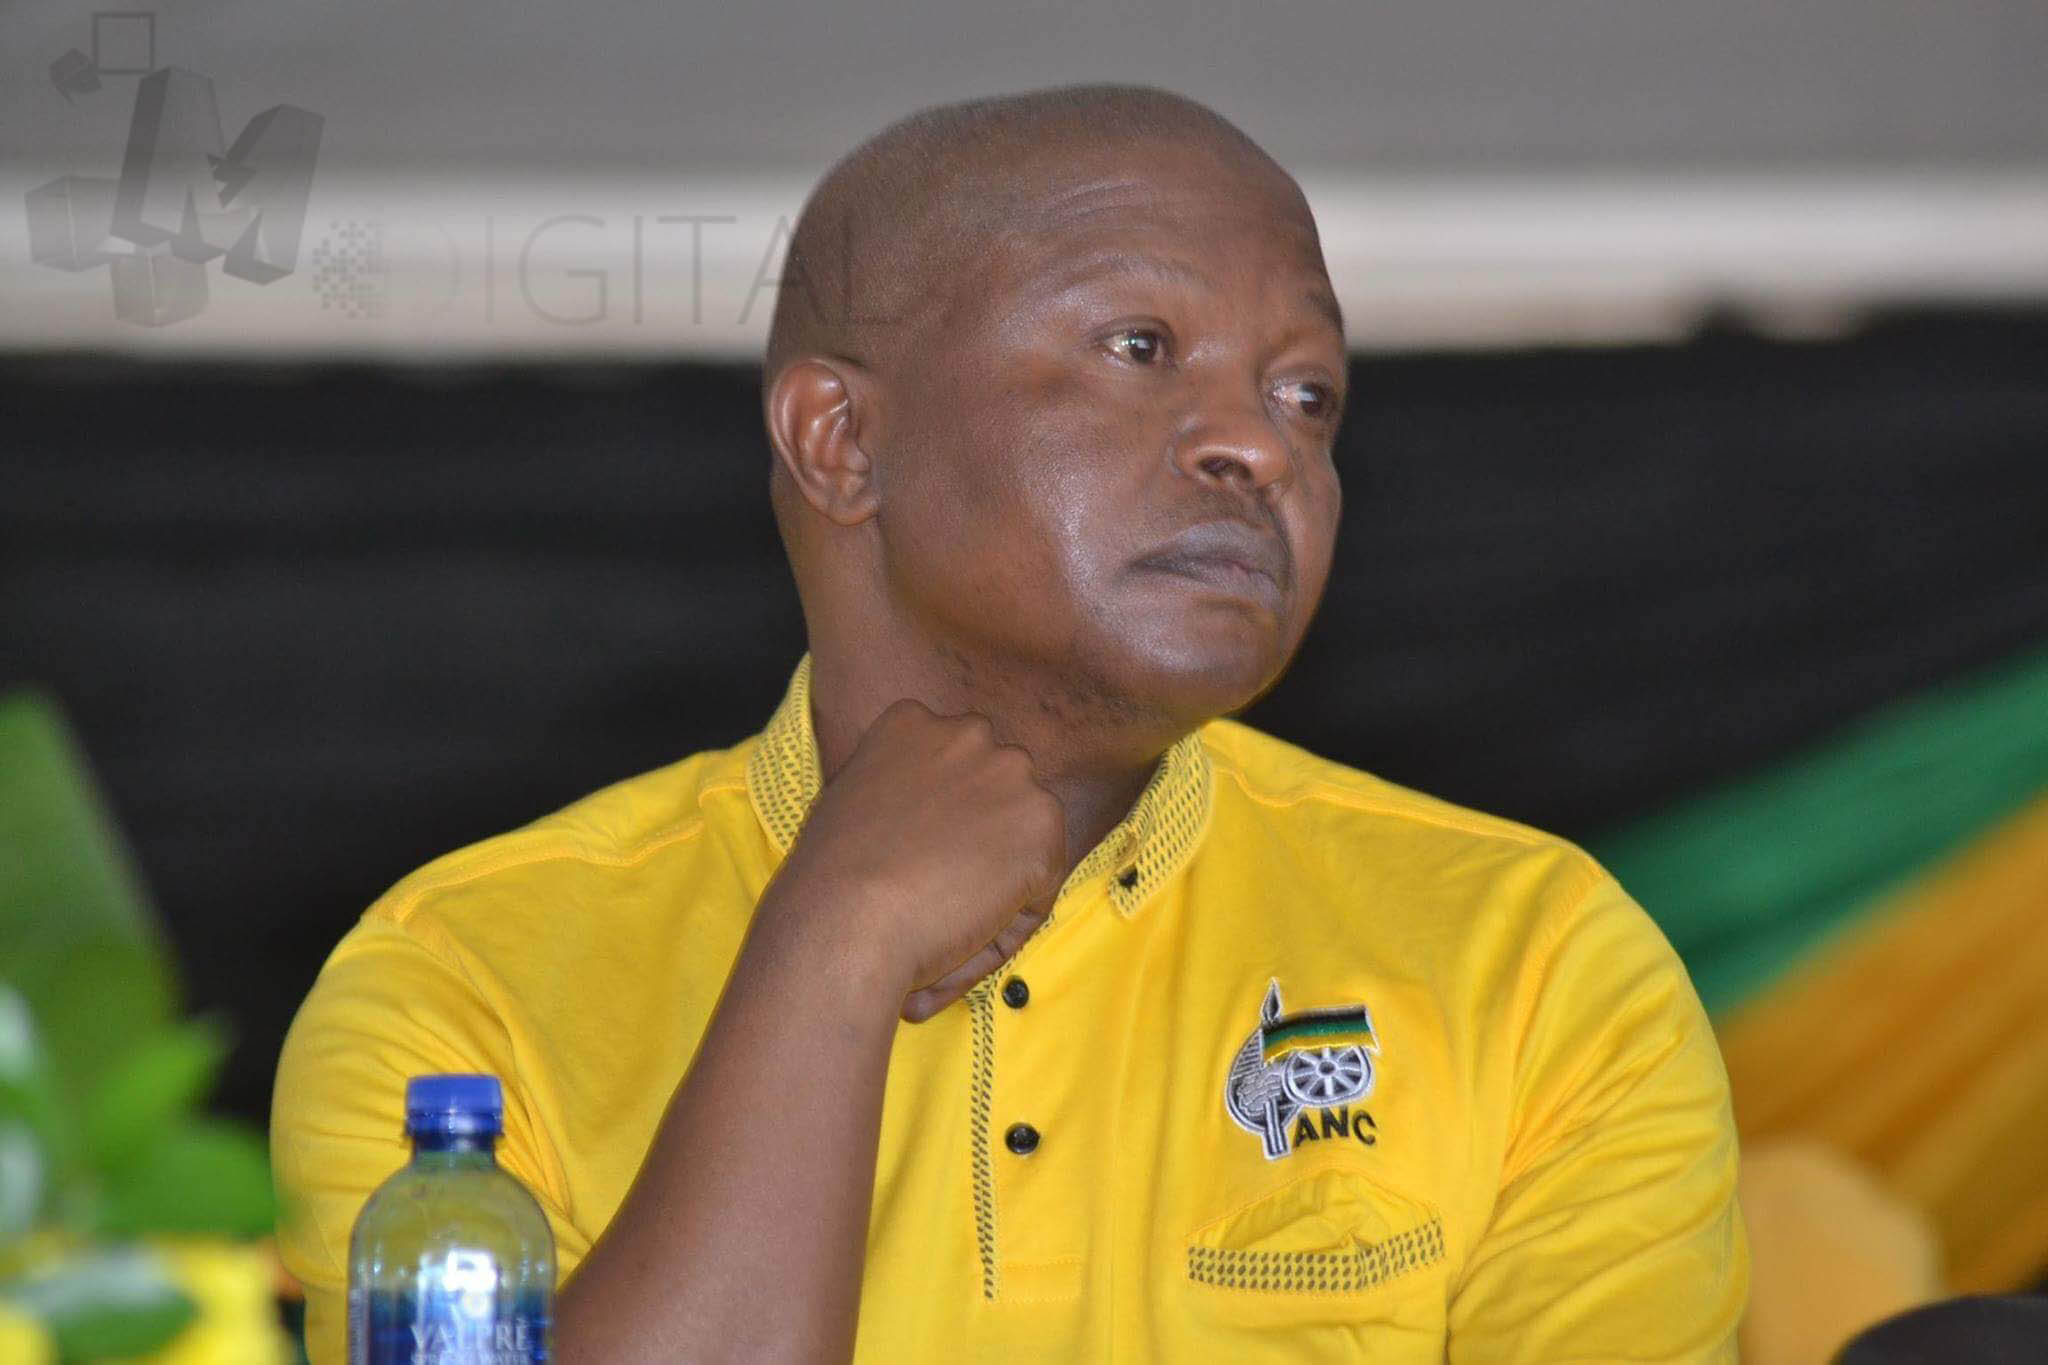 'The DD Mabuza I know will lead this country'